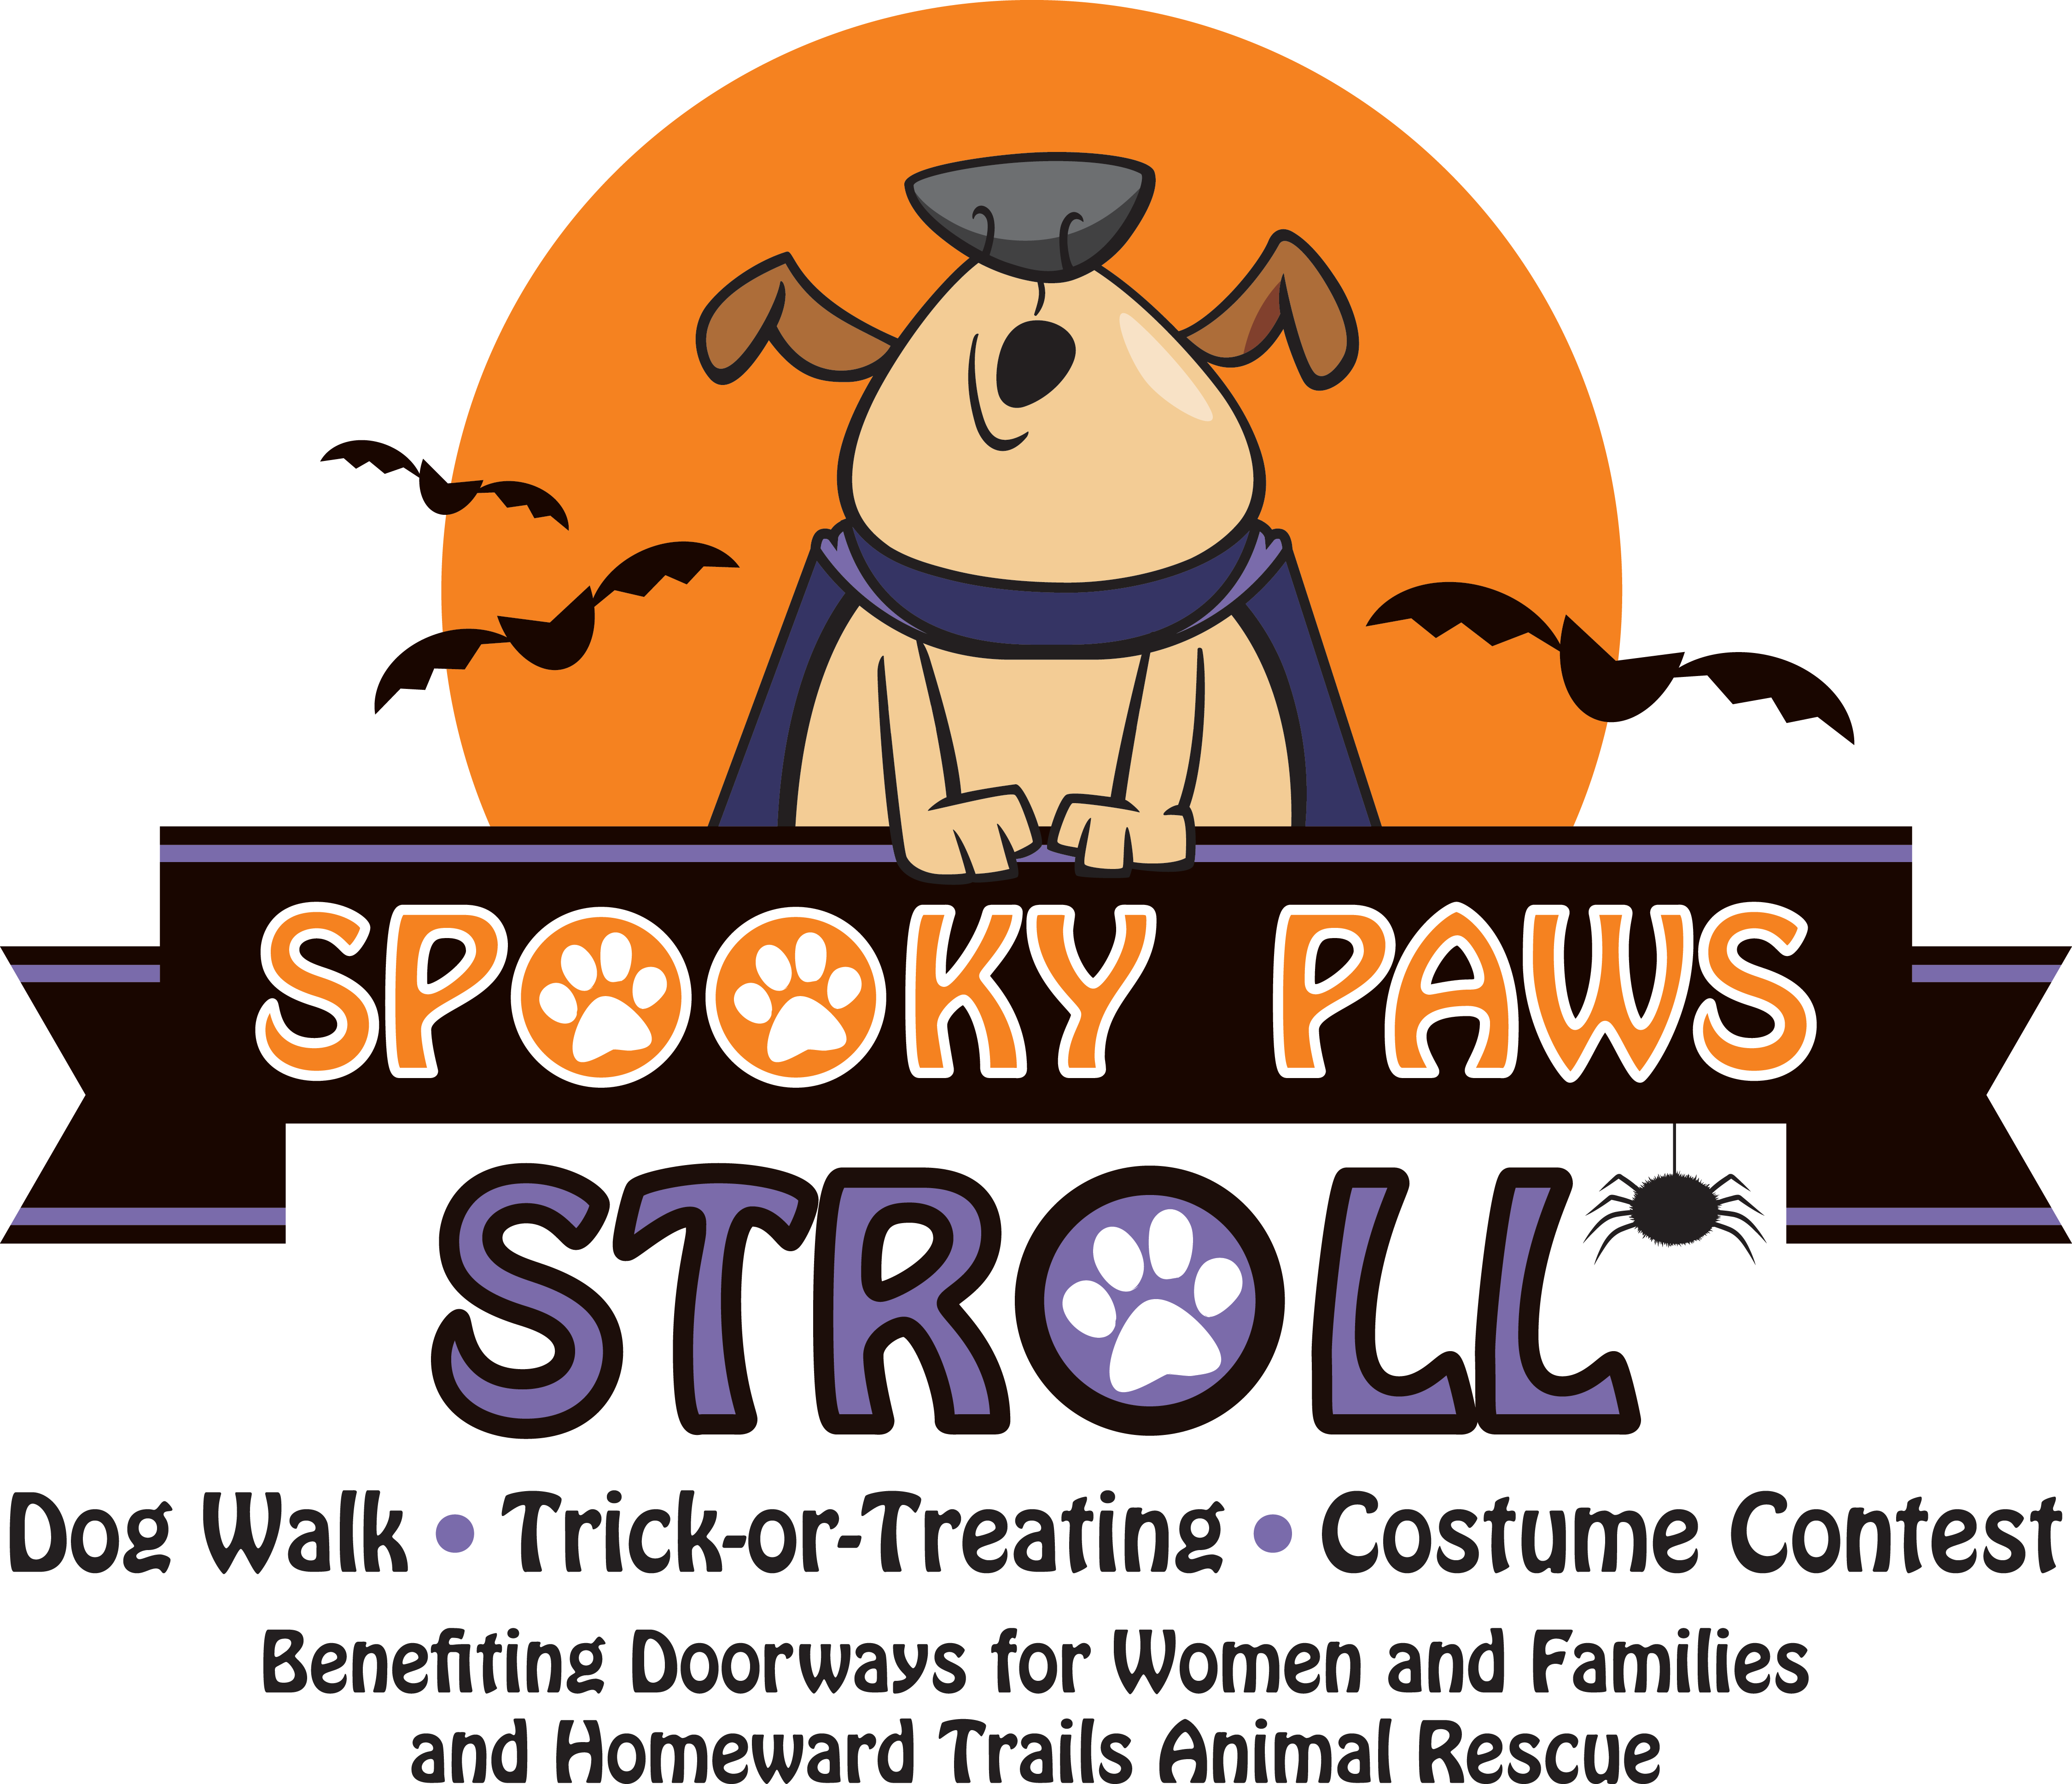 Dog halloween costume clipart png Spooky Paws Stroll and Costume Contest | Doorways for Women and Families png